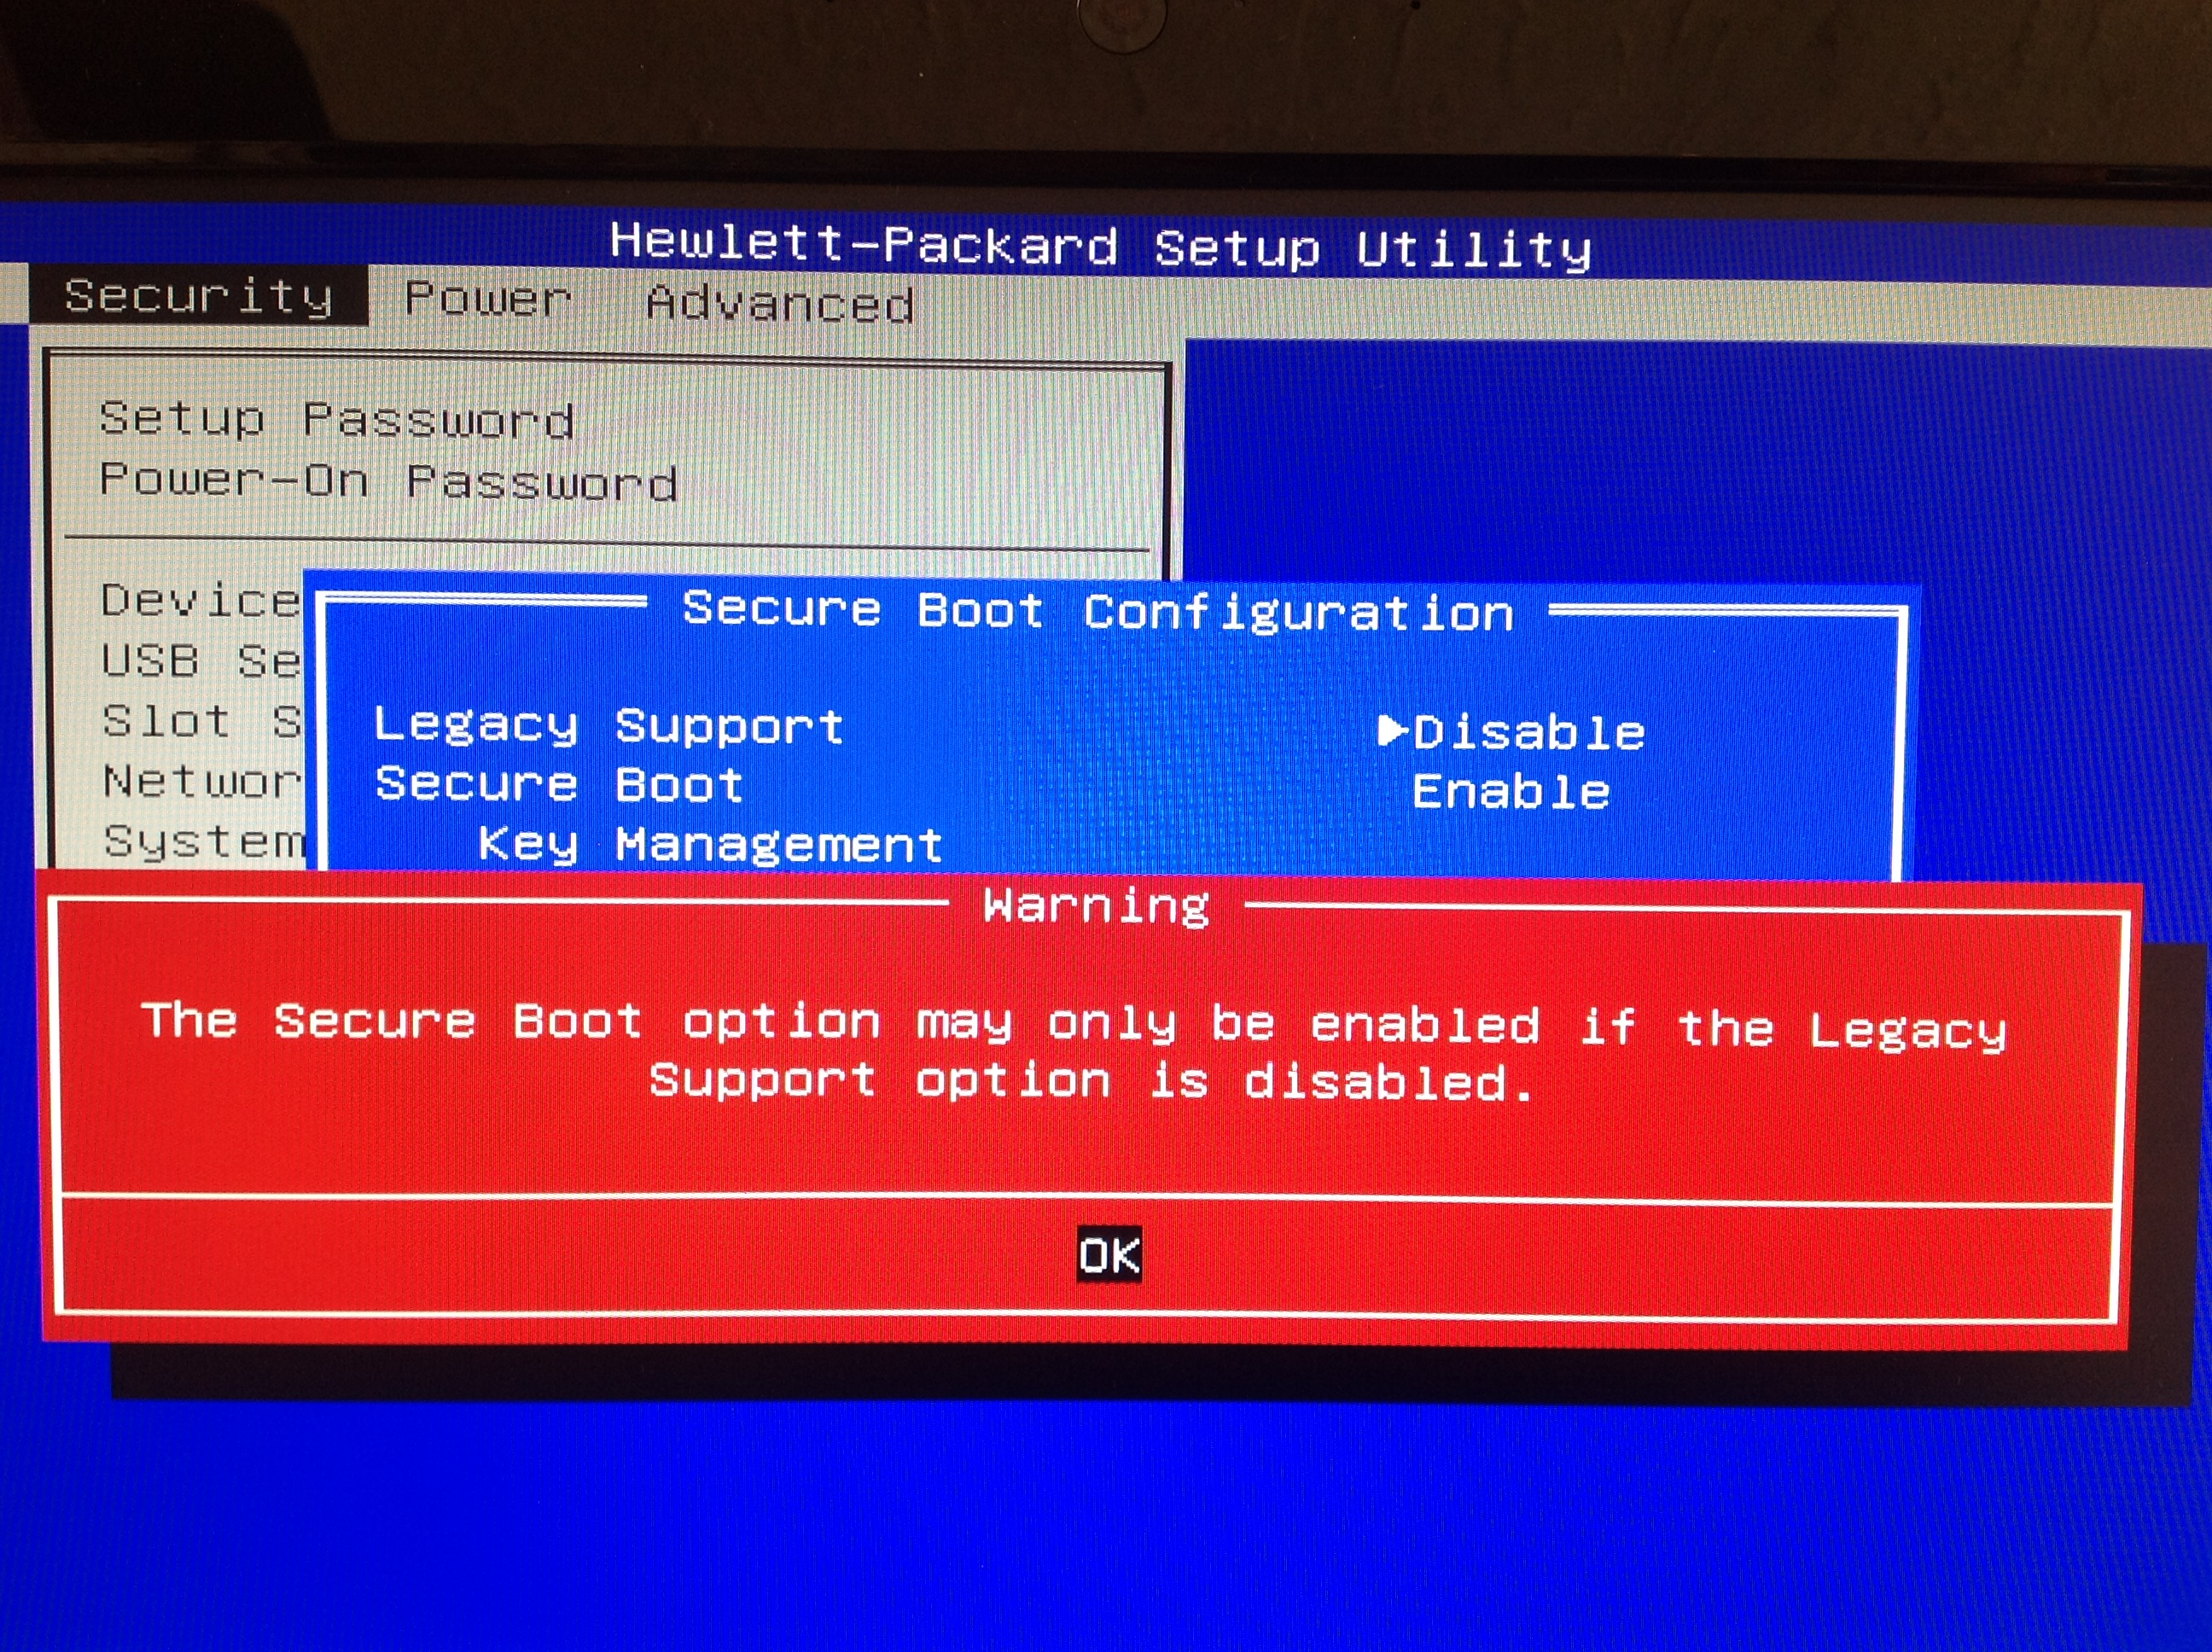 Not able to boot